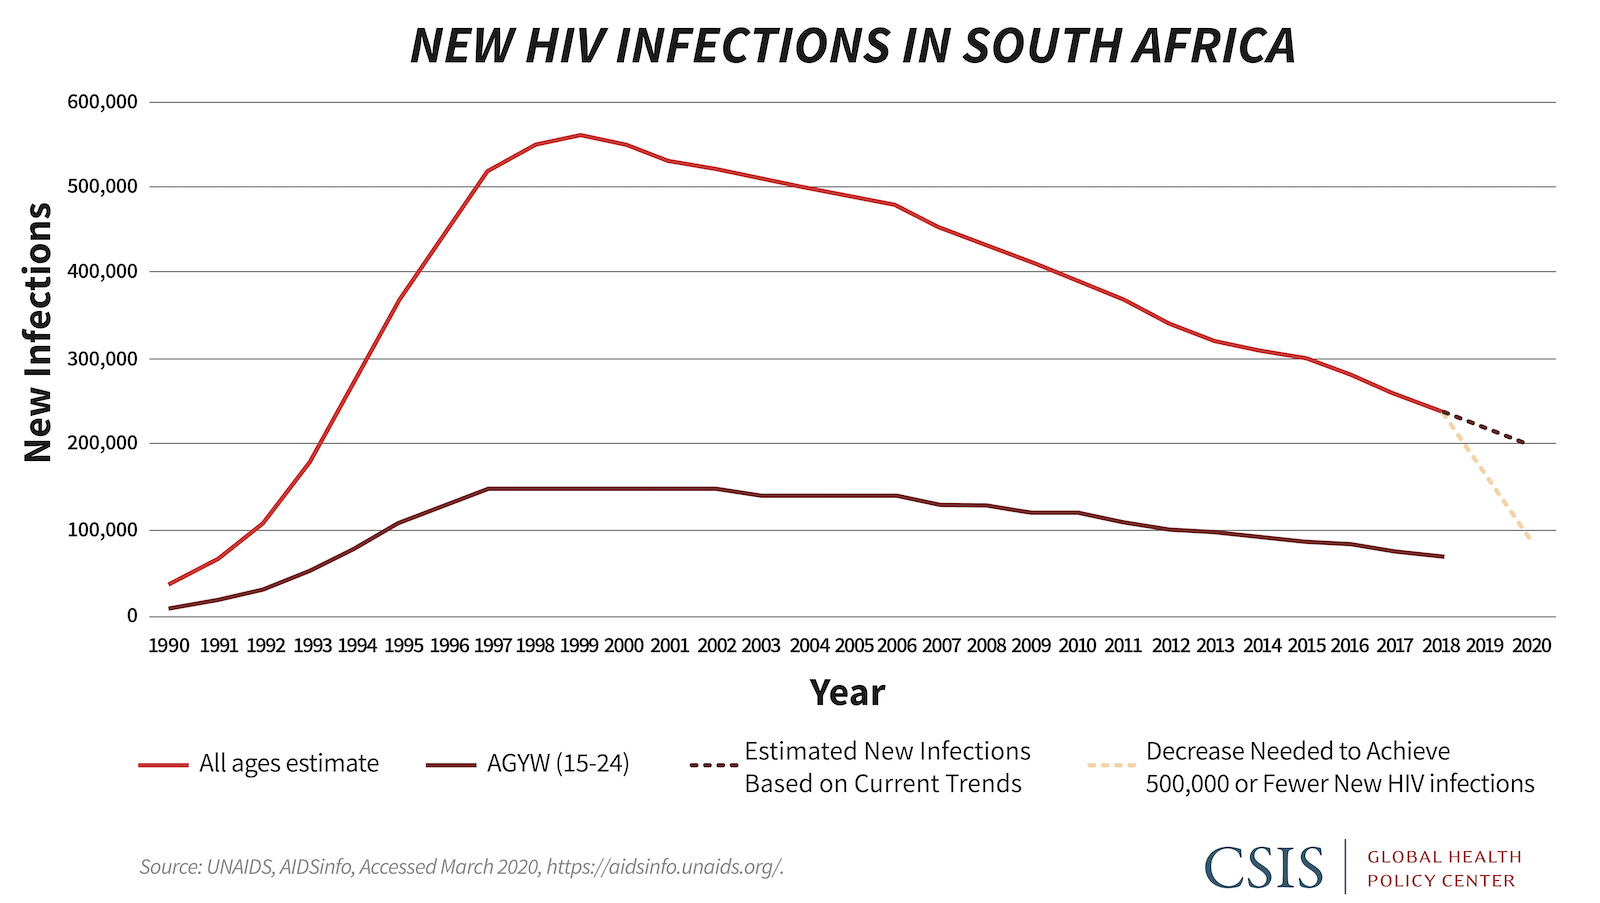 Line graph showing new HIV infections in South Africa